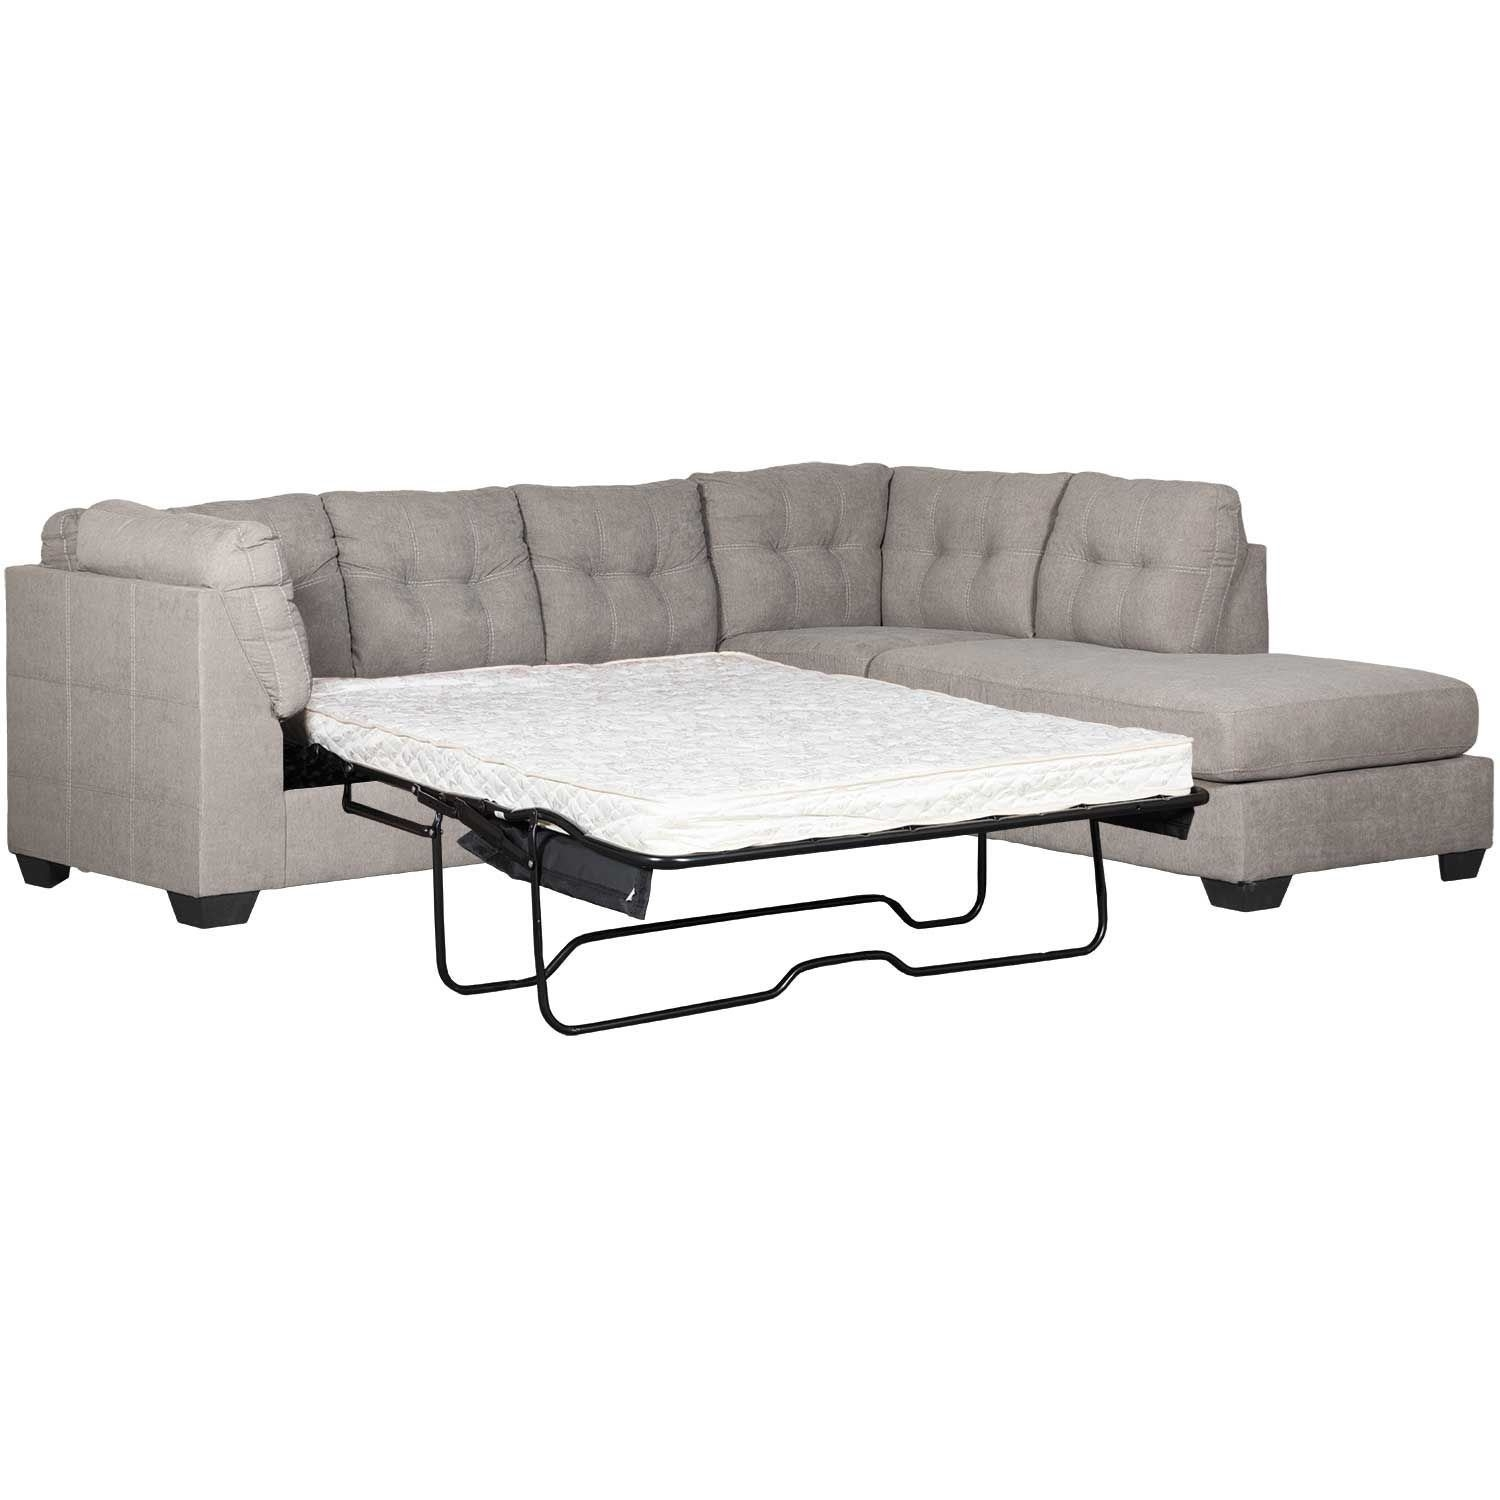 Maier Charcoal 2 Piece Sleeper Sectional With Raf Chaise | 4520017 In Meyer 3 Piece Sectionals With Laf Chaise (View 25 of 25)